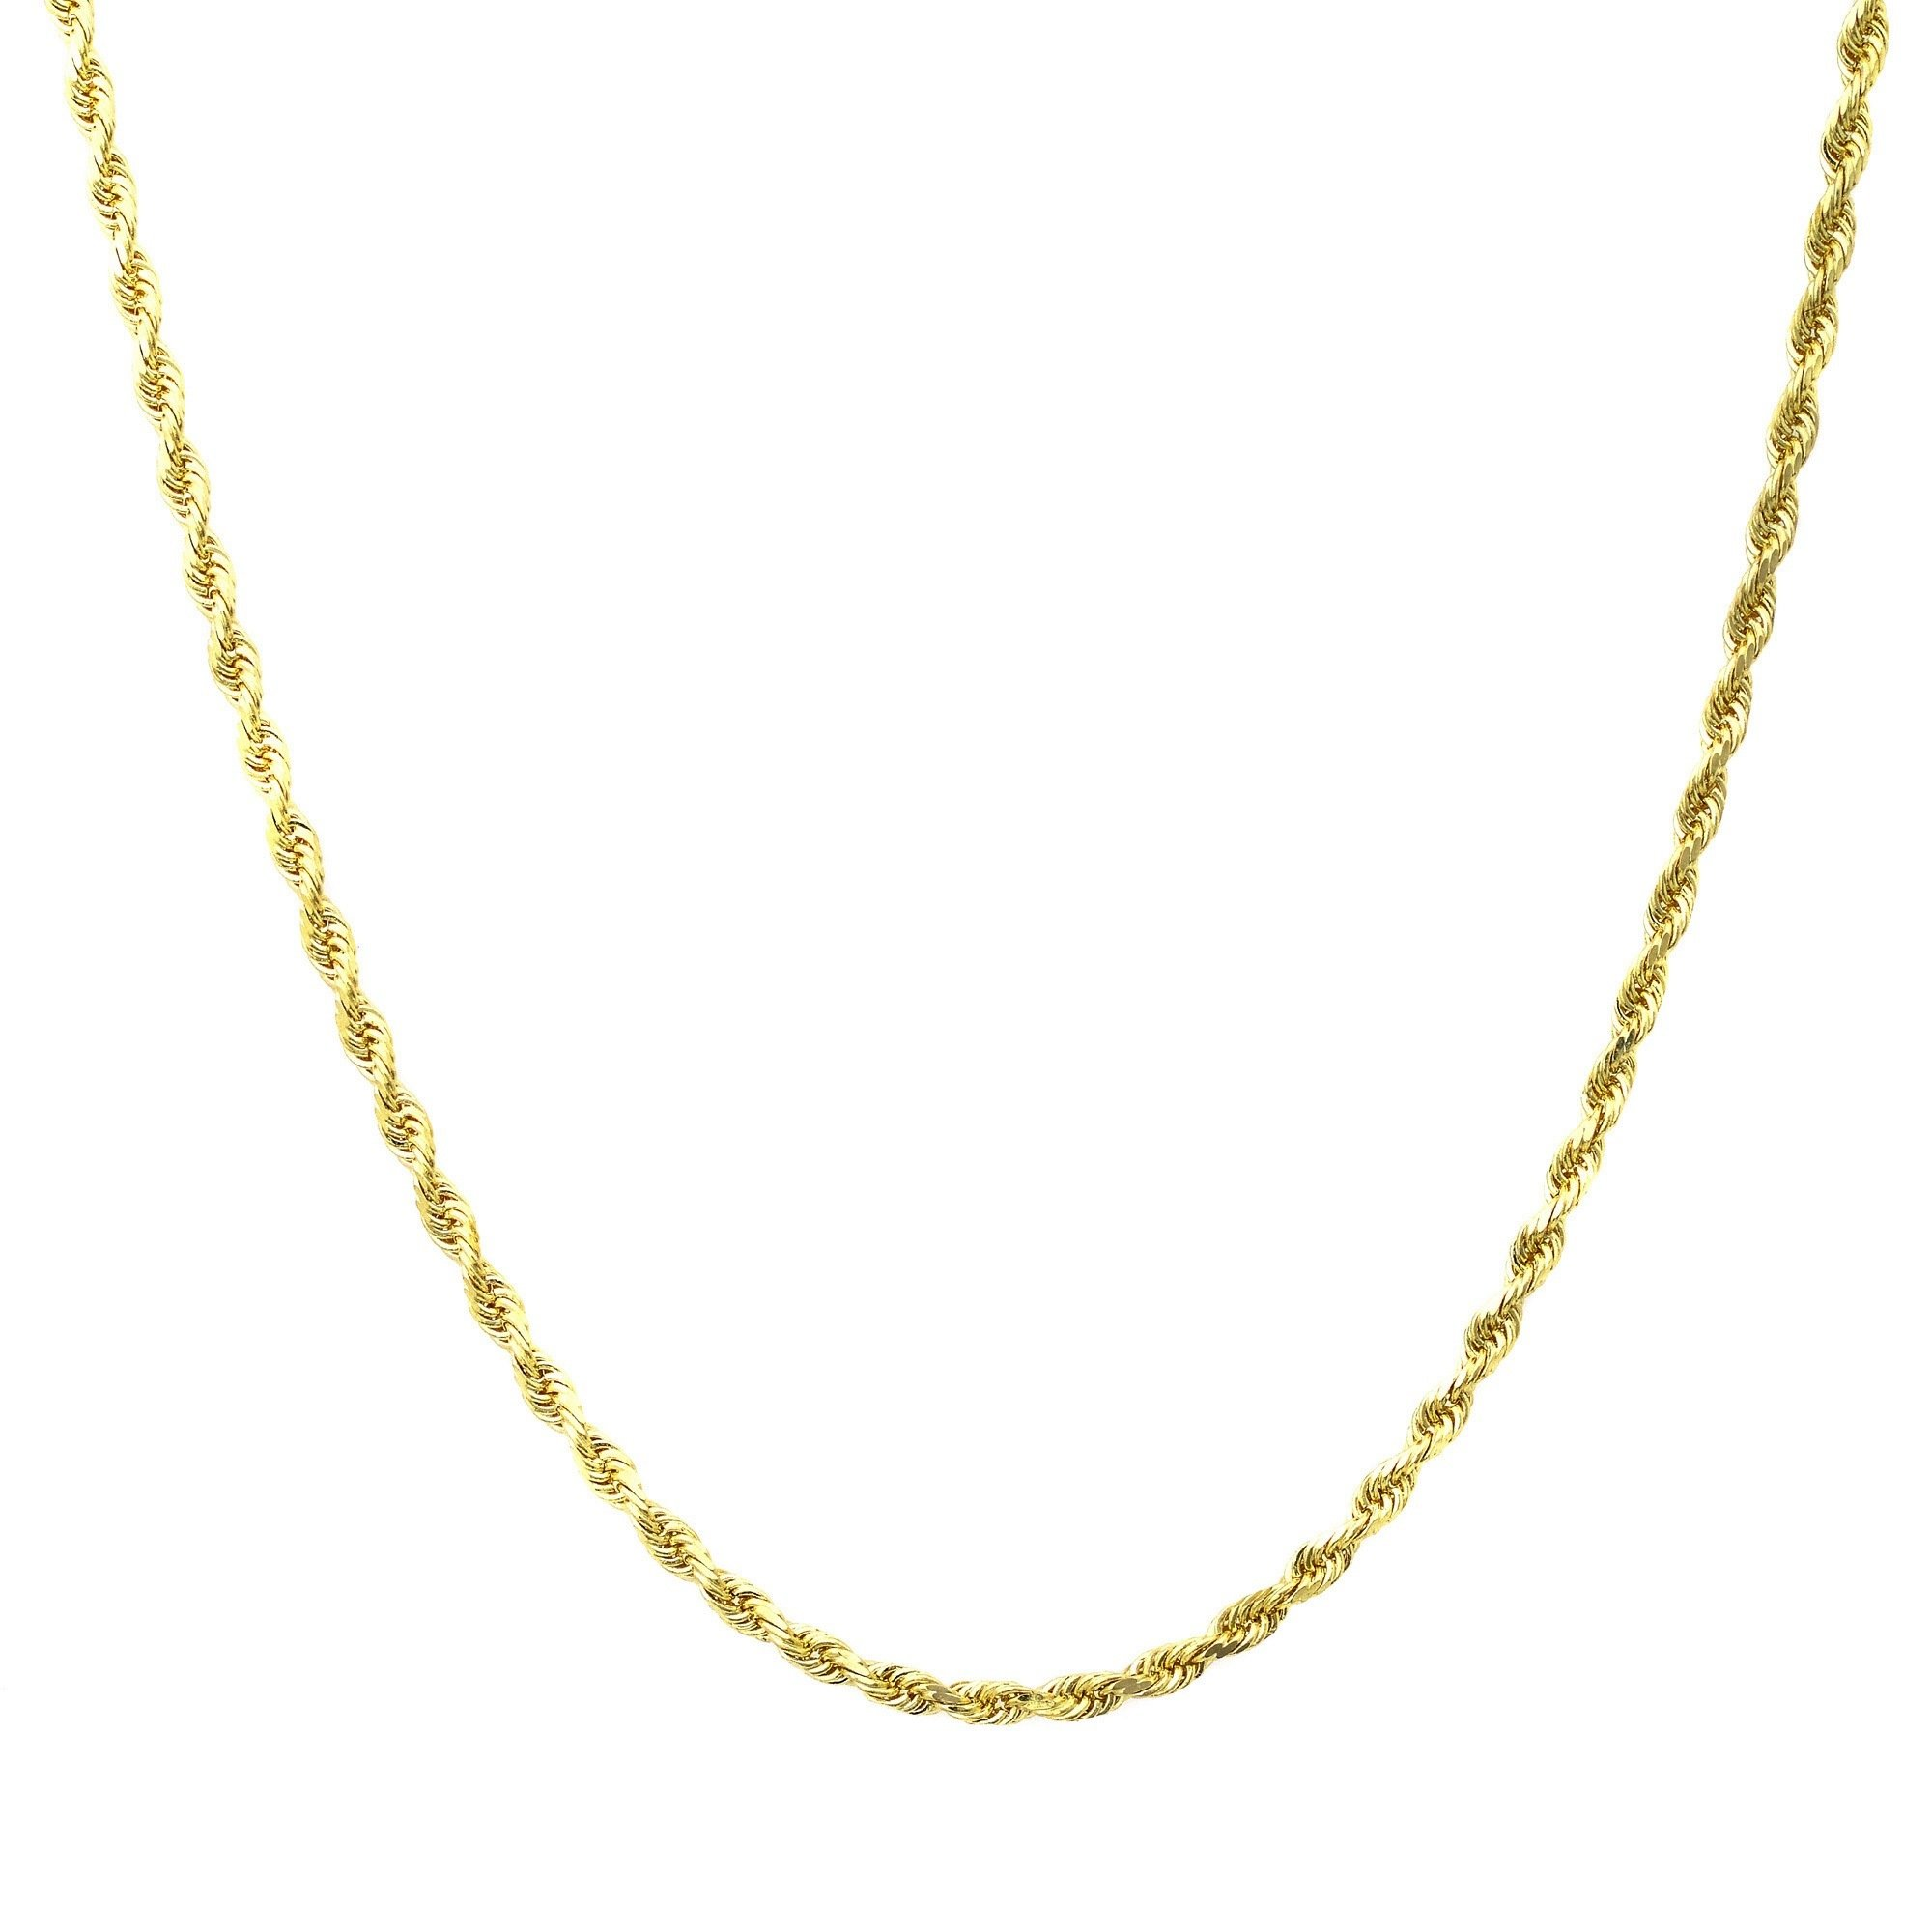 18K Gold 2.5MM Diamond Cut Rope Chain Necklace Unisex Sizes 16''-30'' - 18 Karat Gold (20)